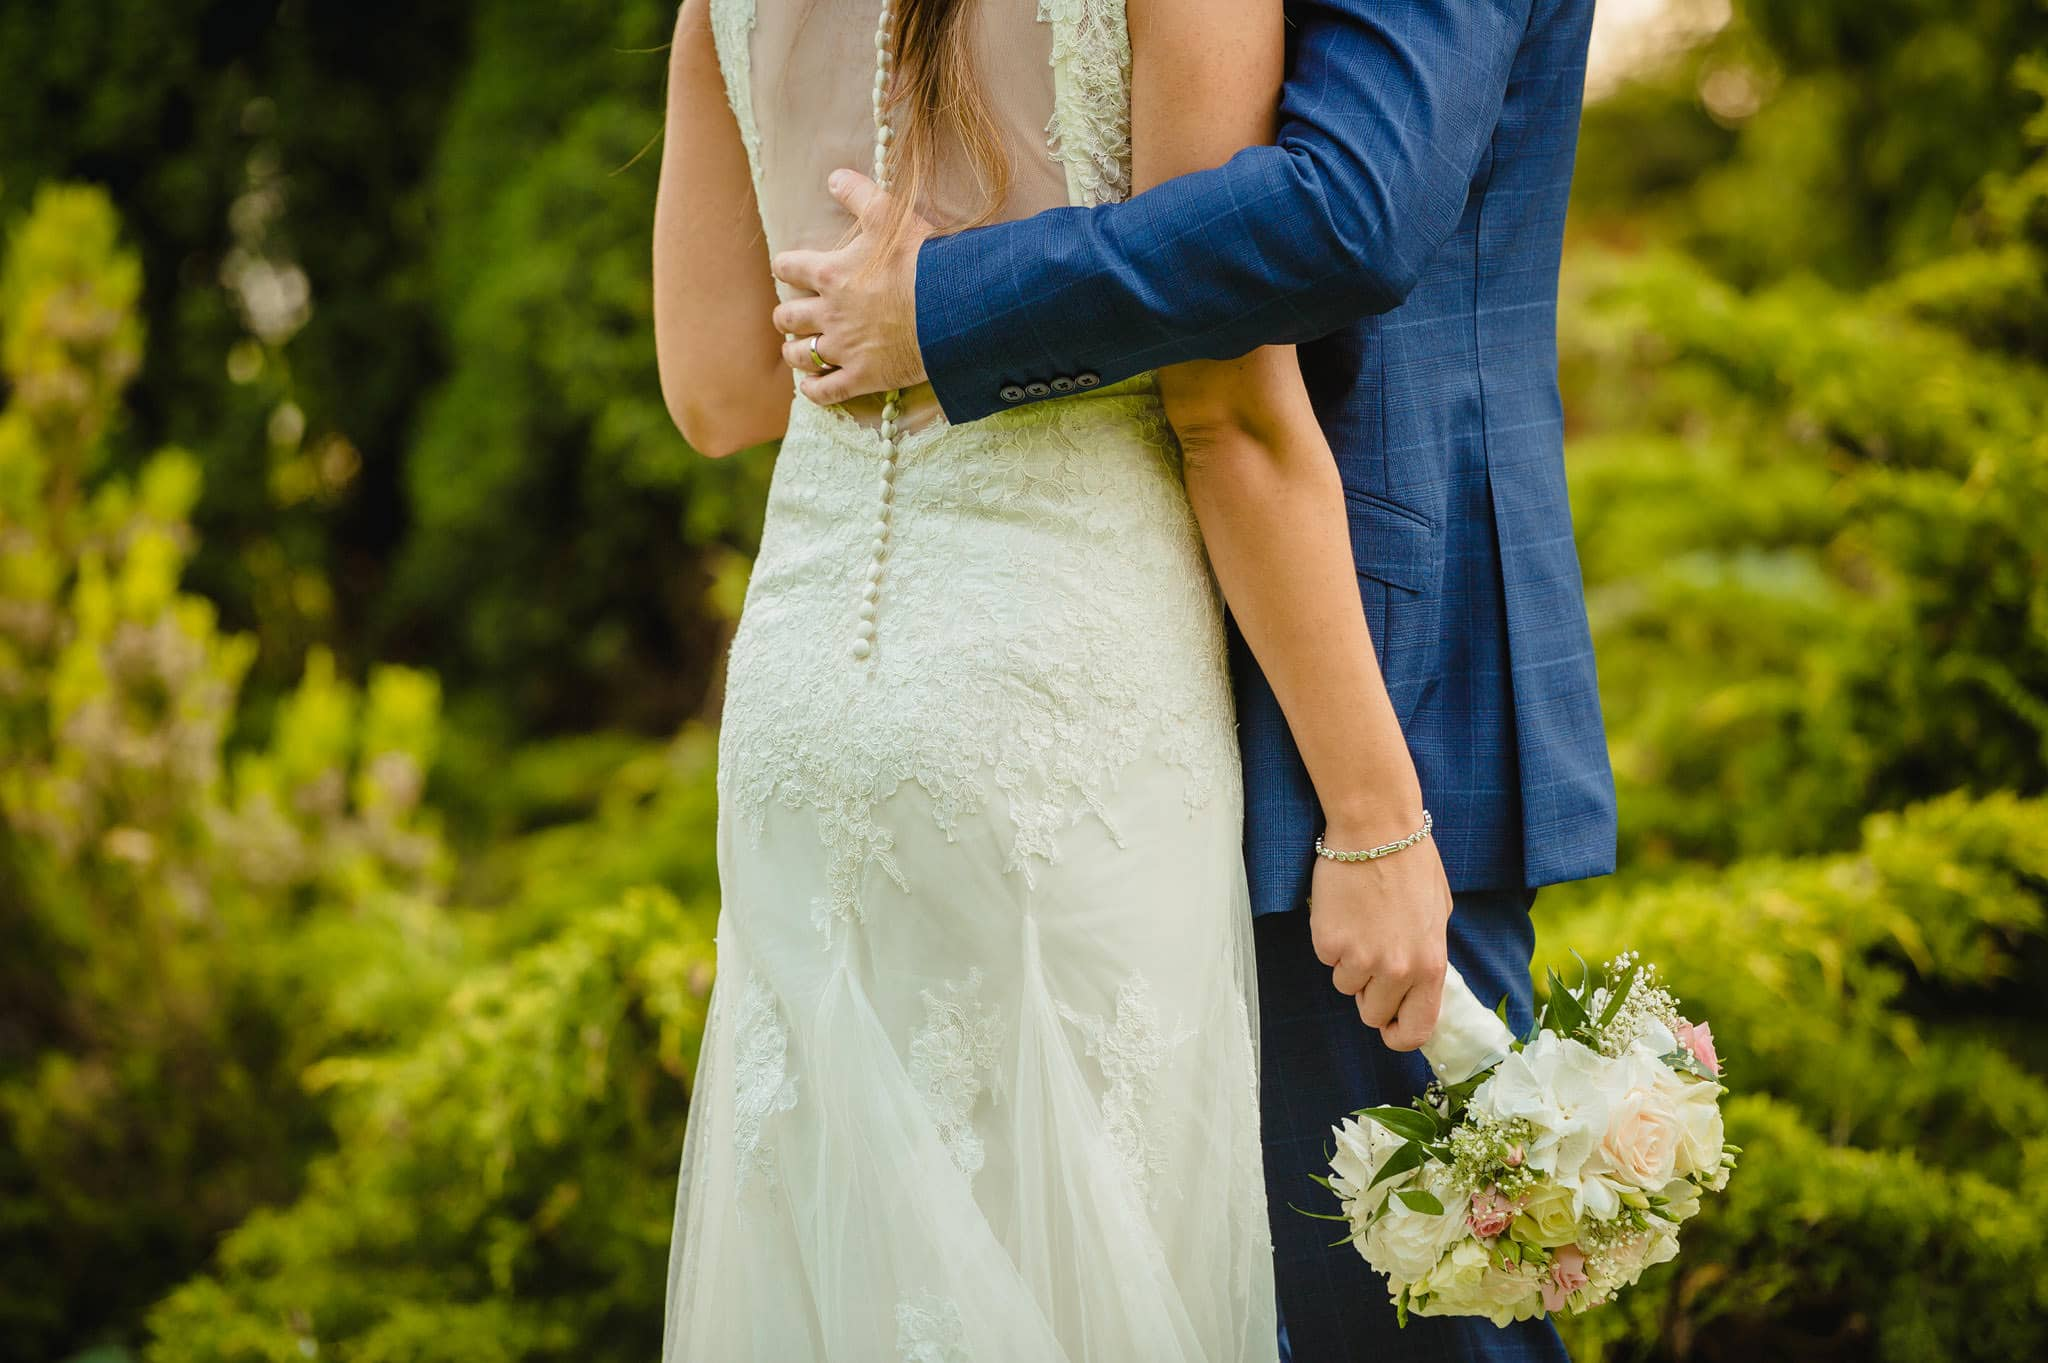 Wedding at Redhouse Barn in Stoke Prior, Worcestershire 160